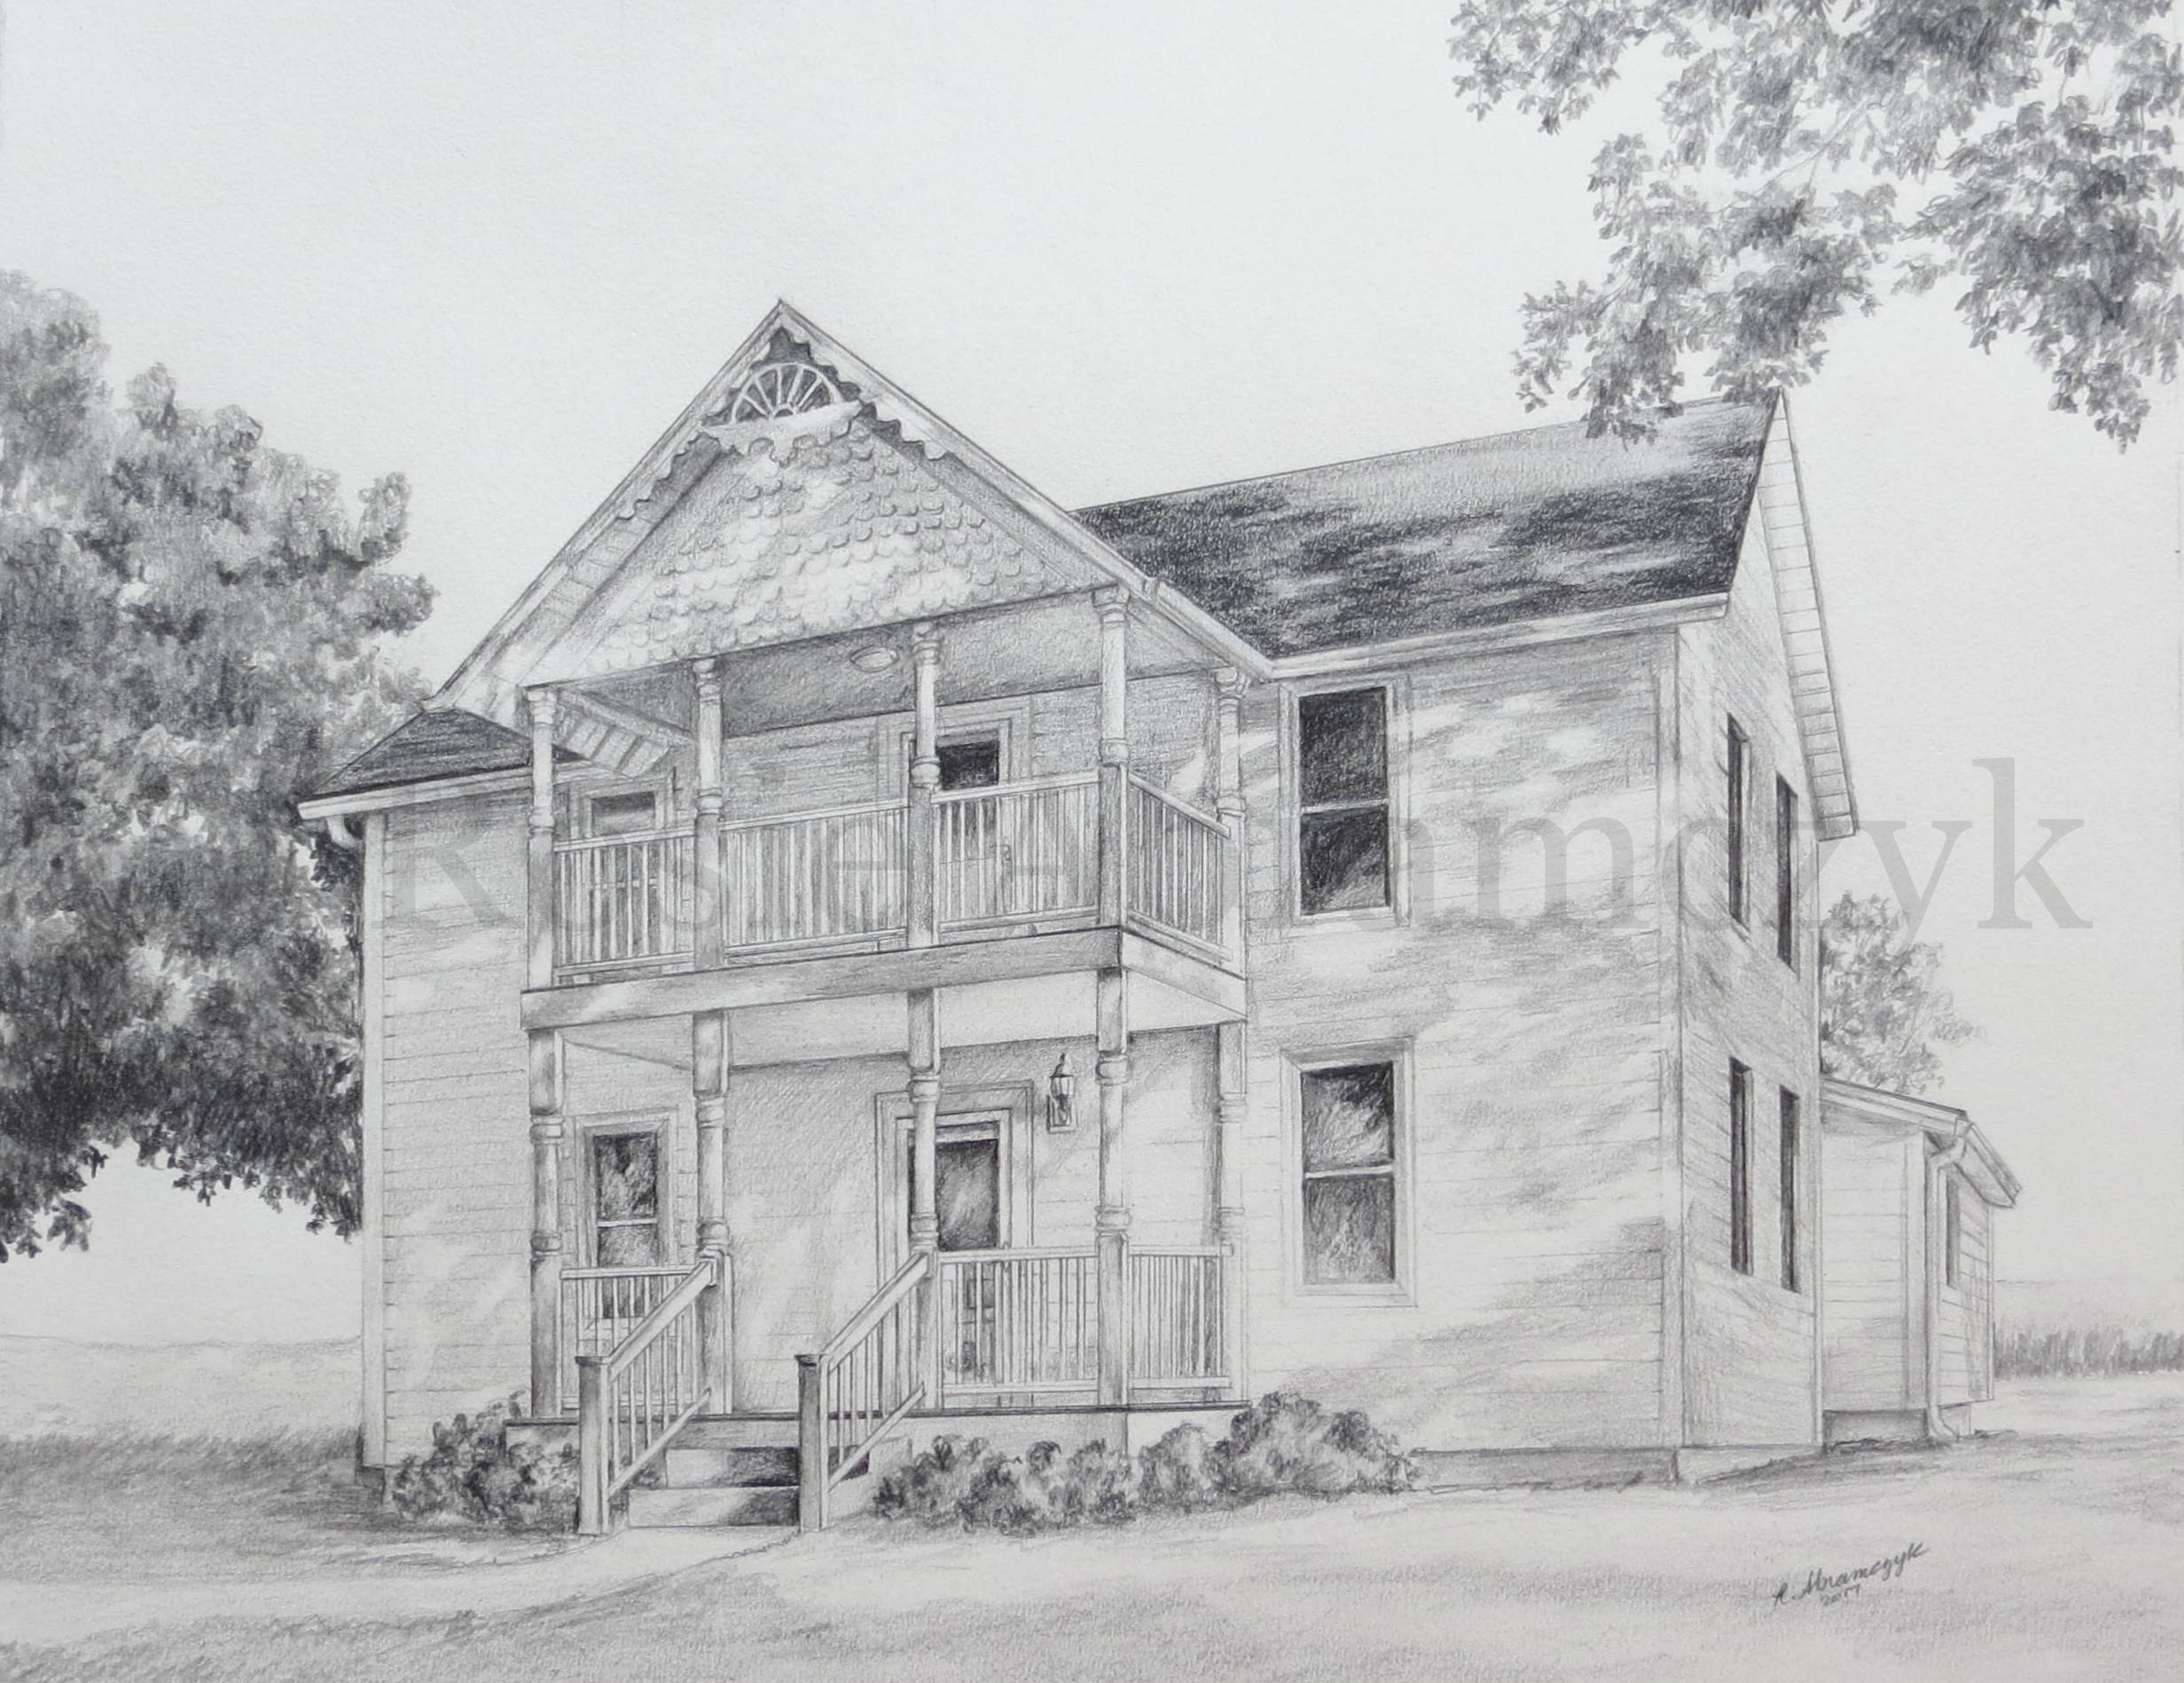 Whitener Home, Marquand, MO, by Rosie Abramczyk, Pencil, 2017